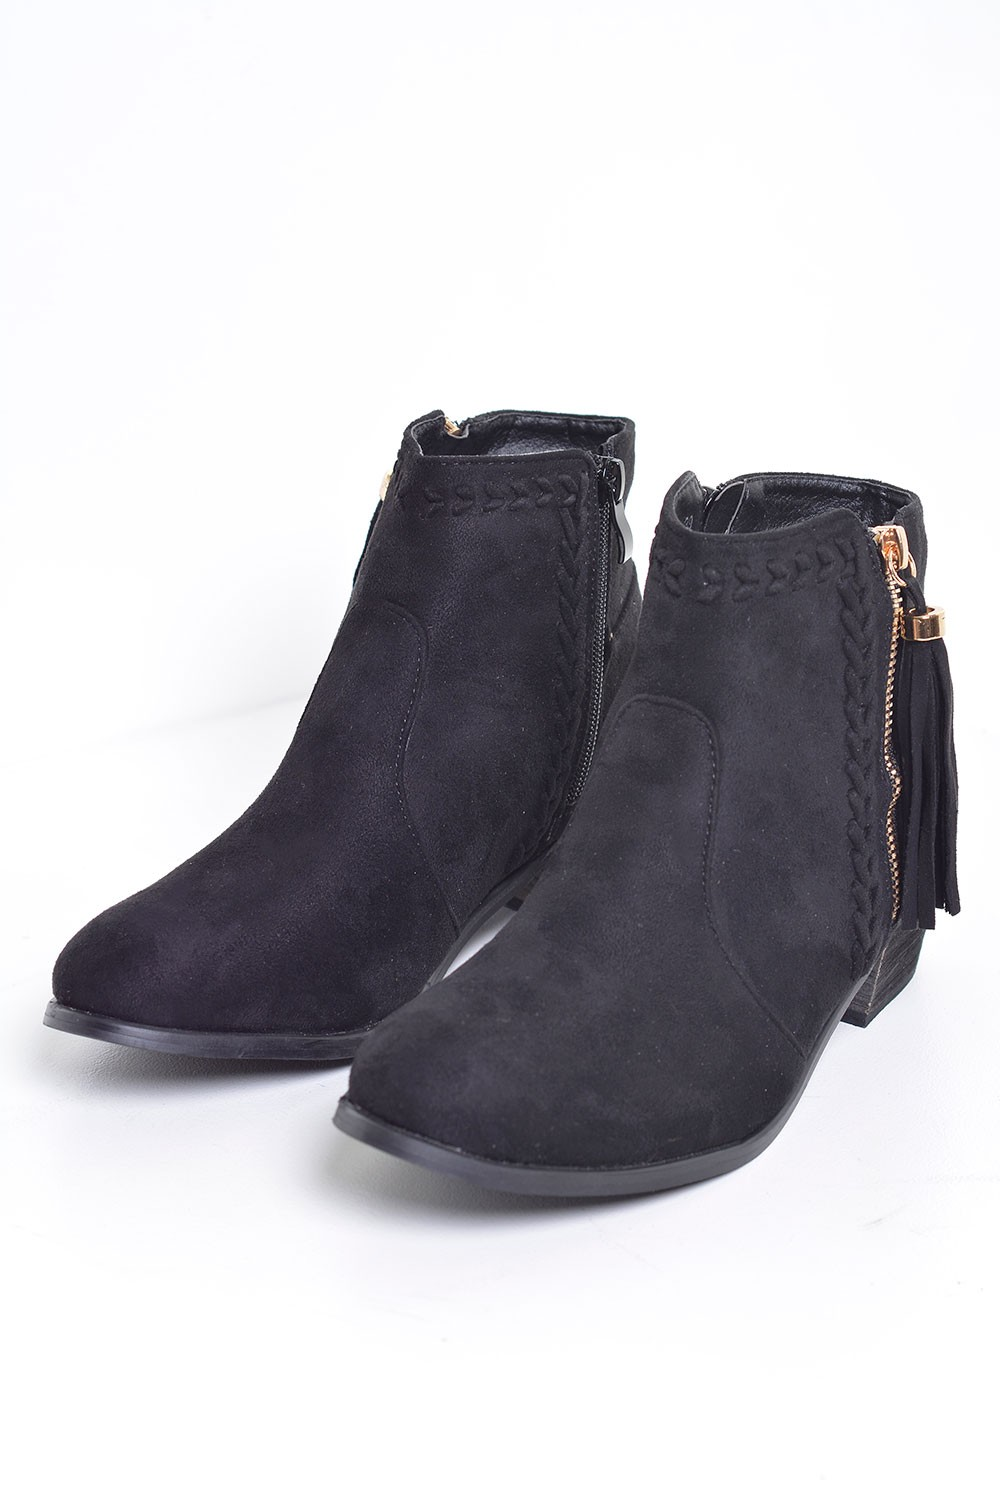 c m polly embroidered ankle boots in black suede